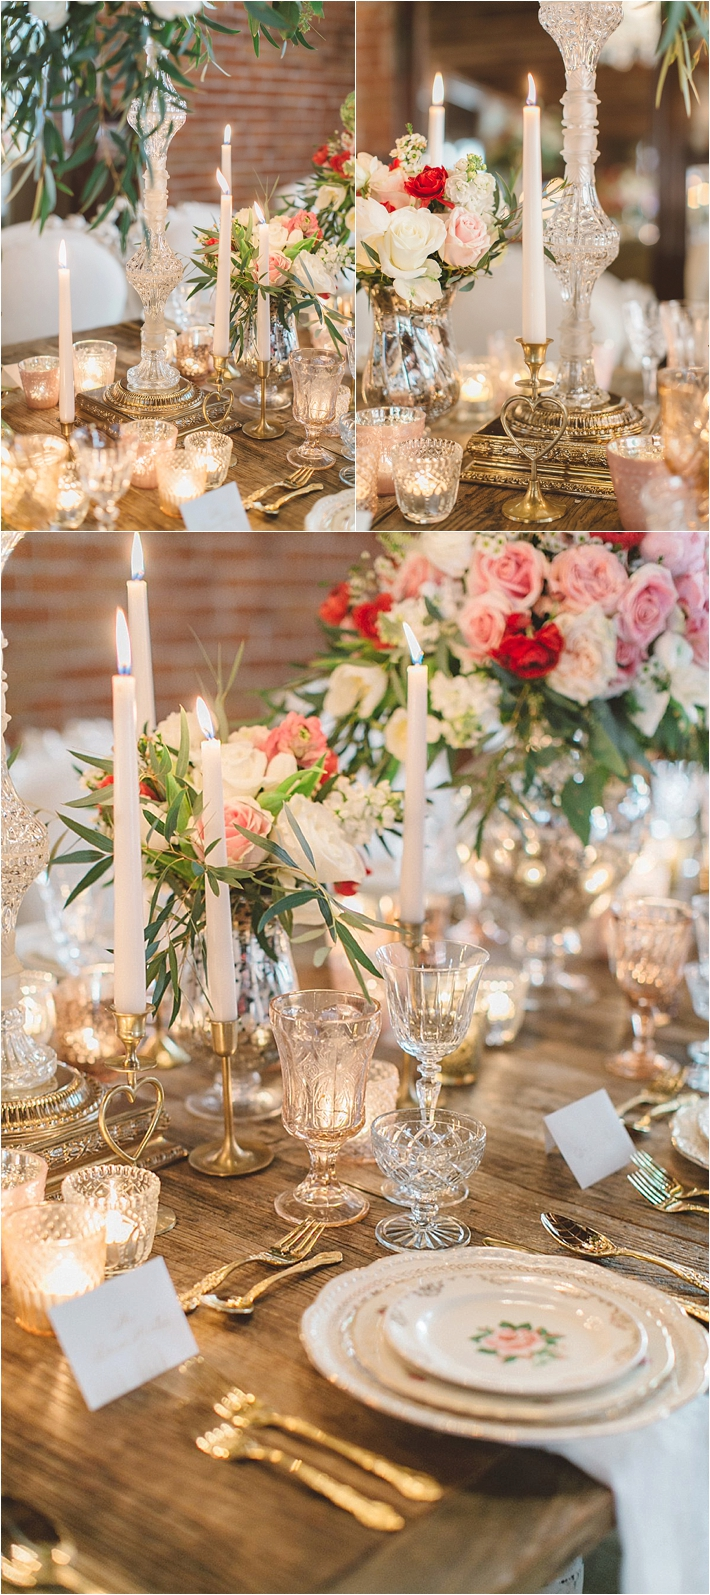 Romantic pink and white centerpiece with candles